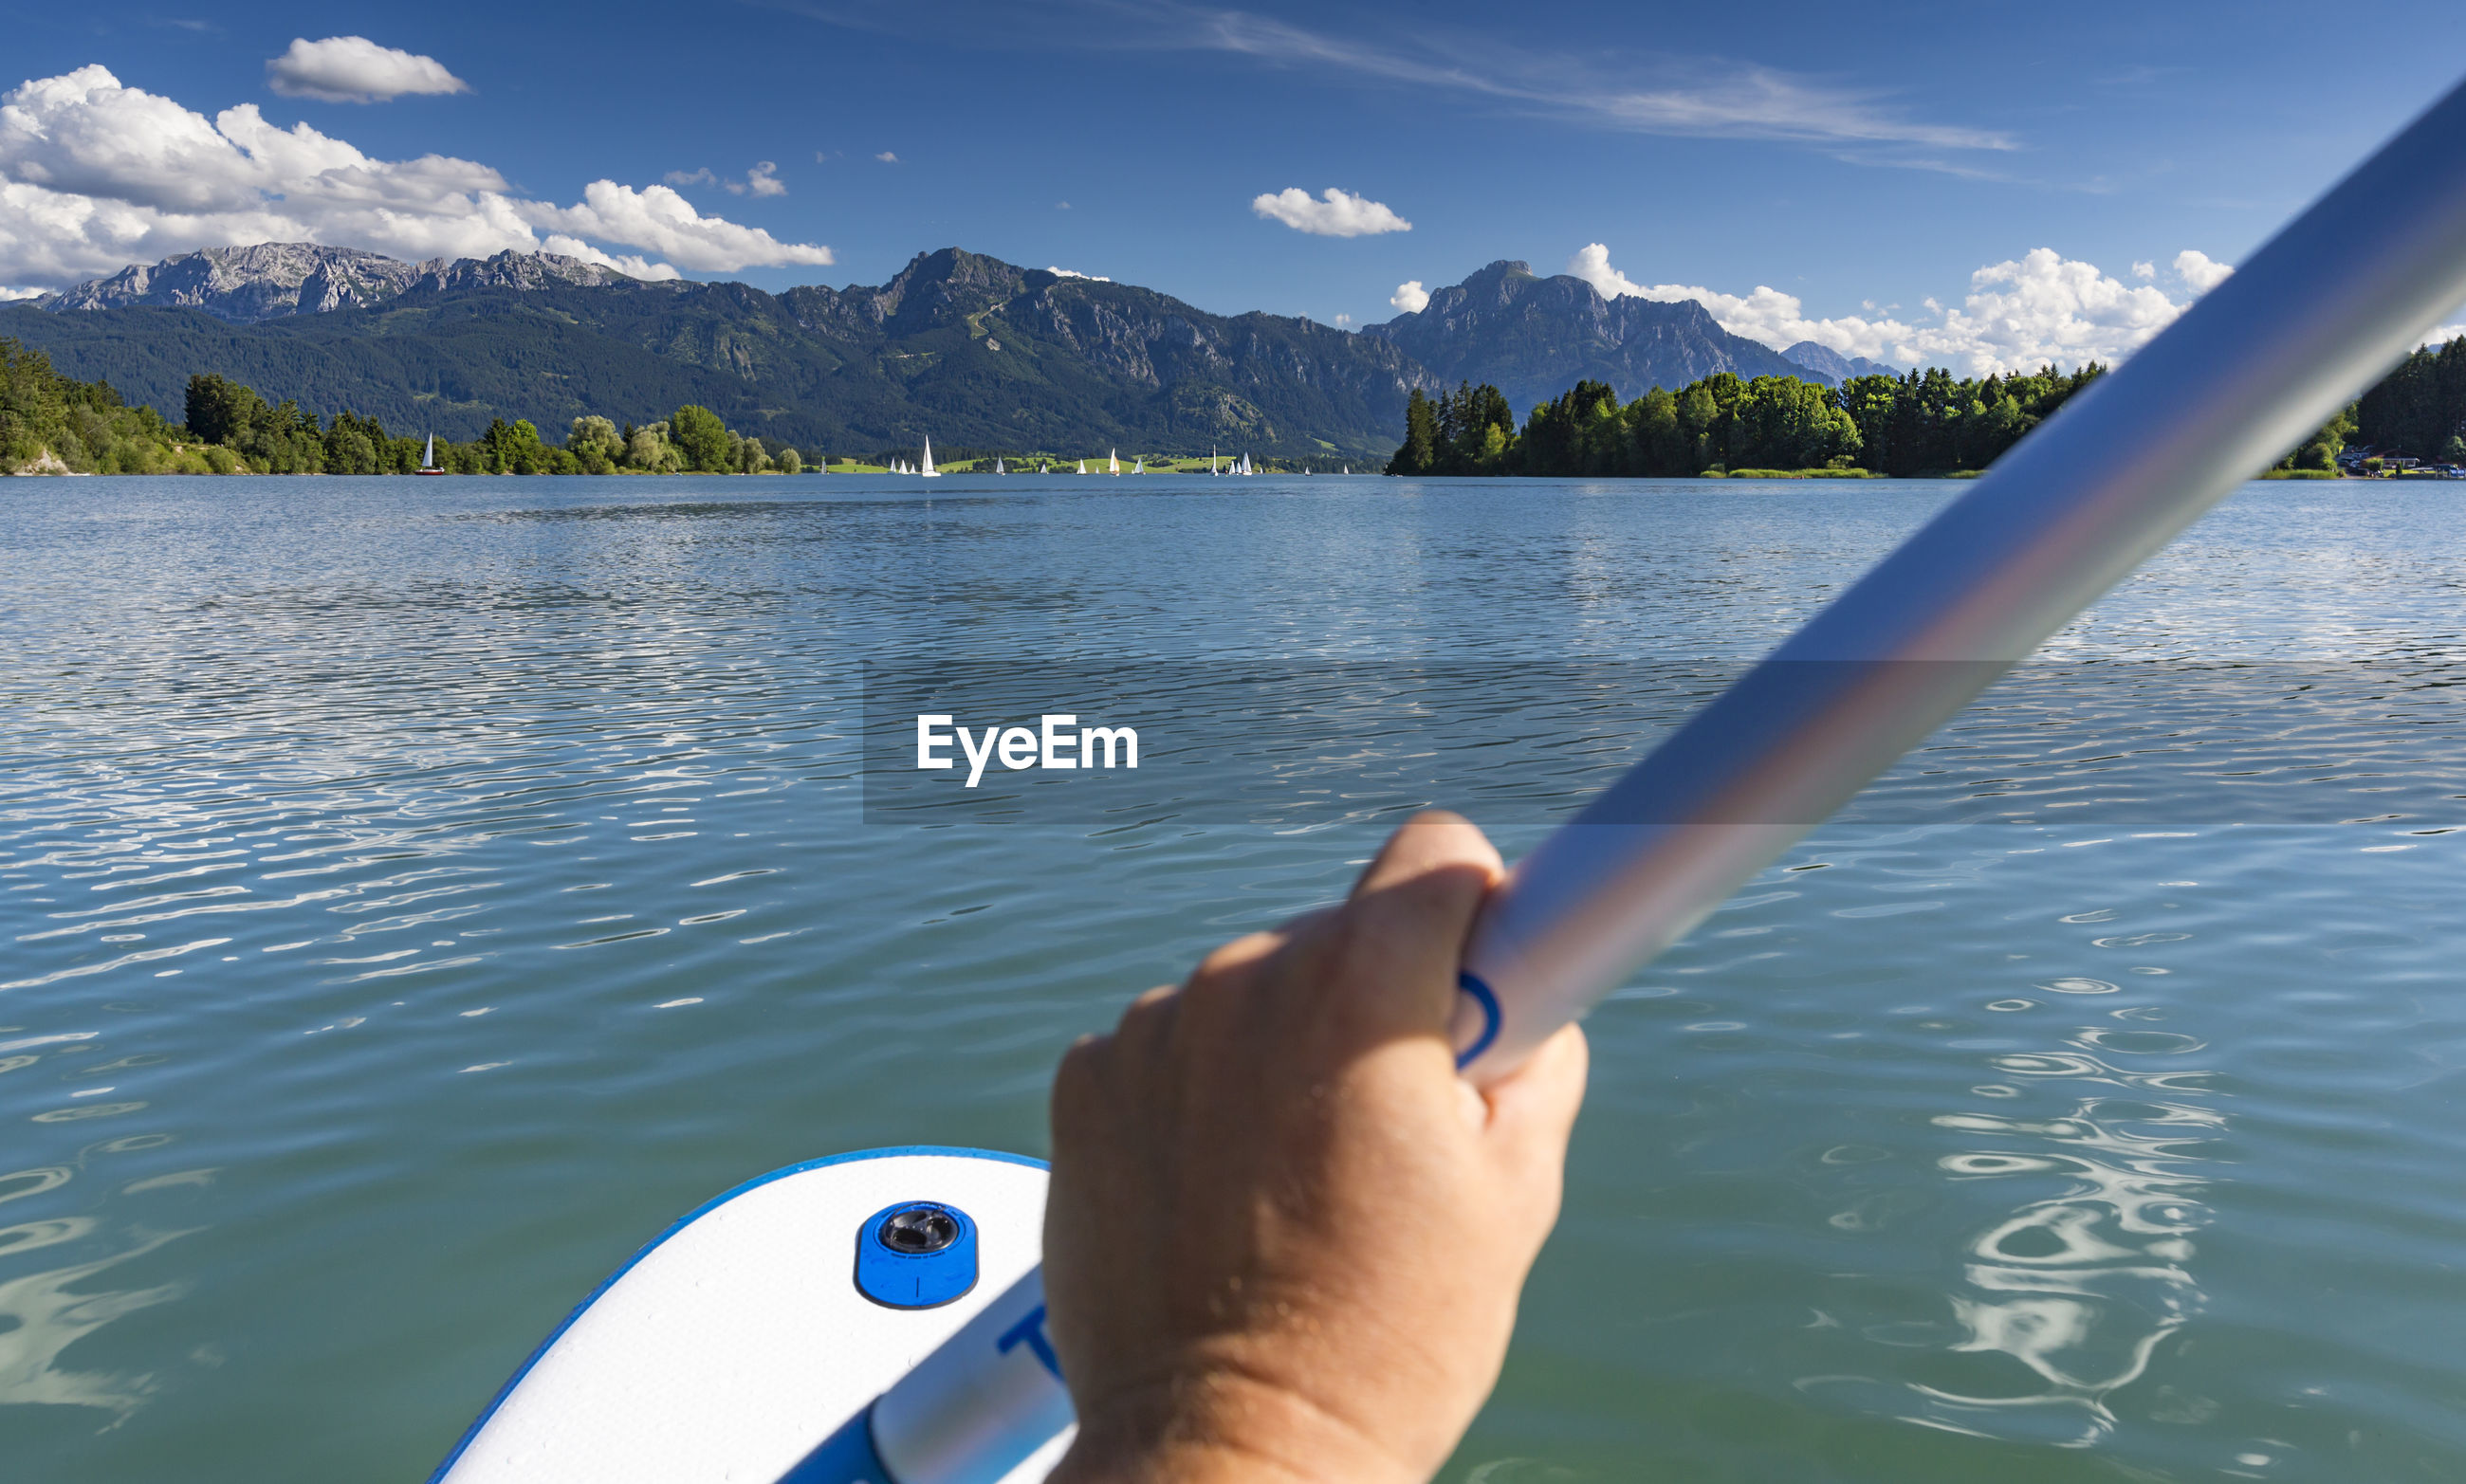 Cropped image of person holding pole in boat on lake